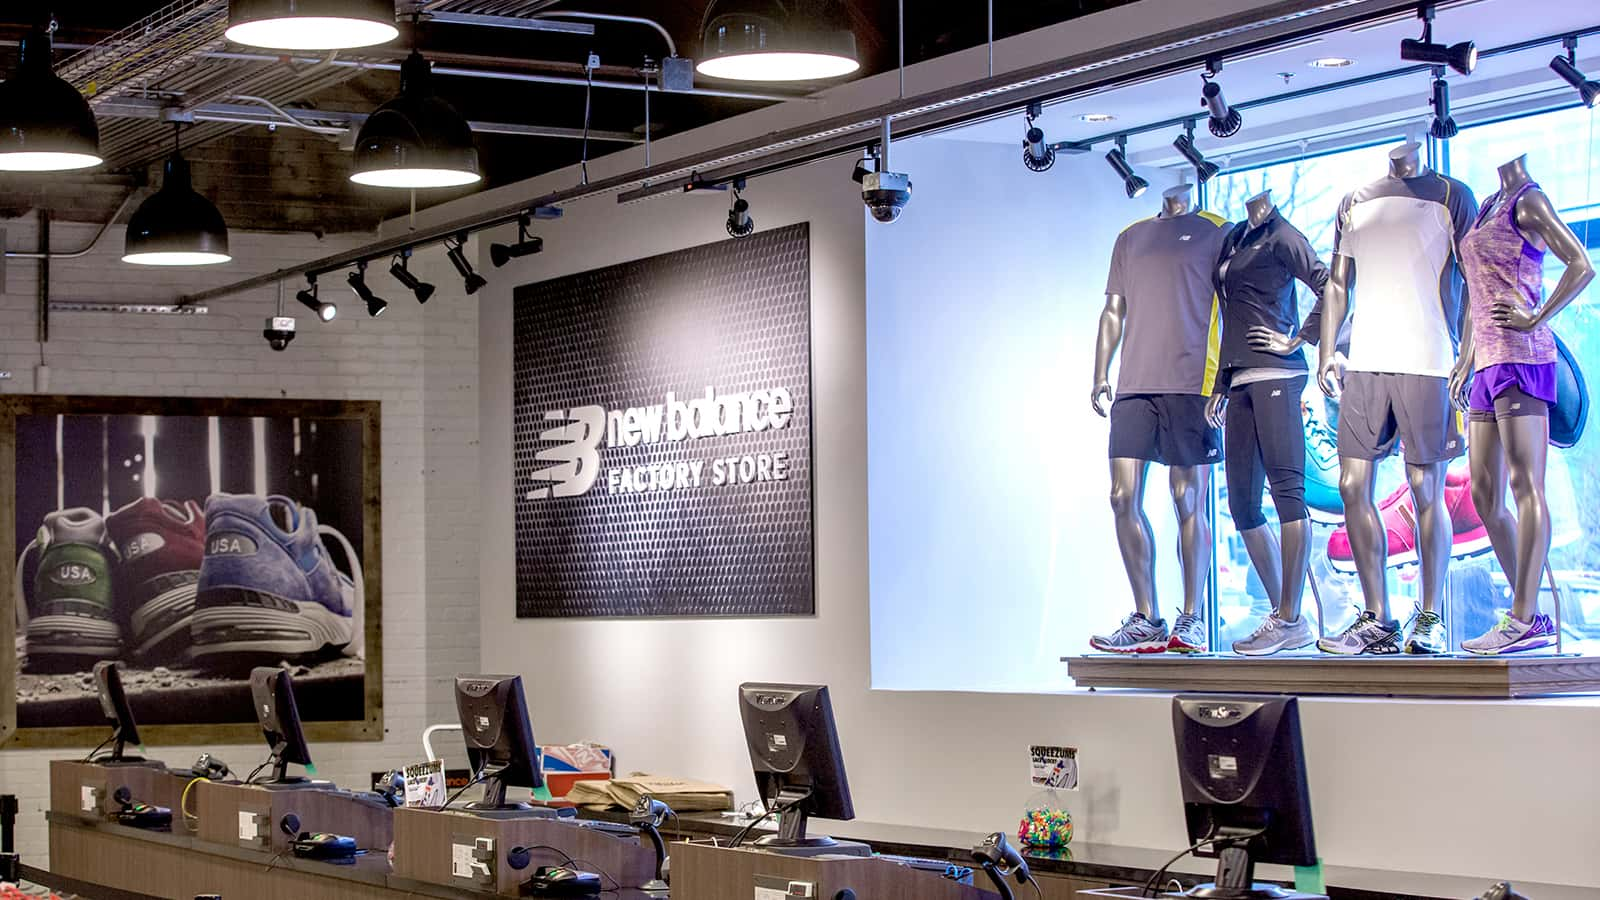 New Balance factory stores 2014 checkout.